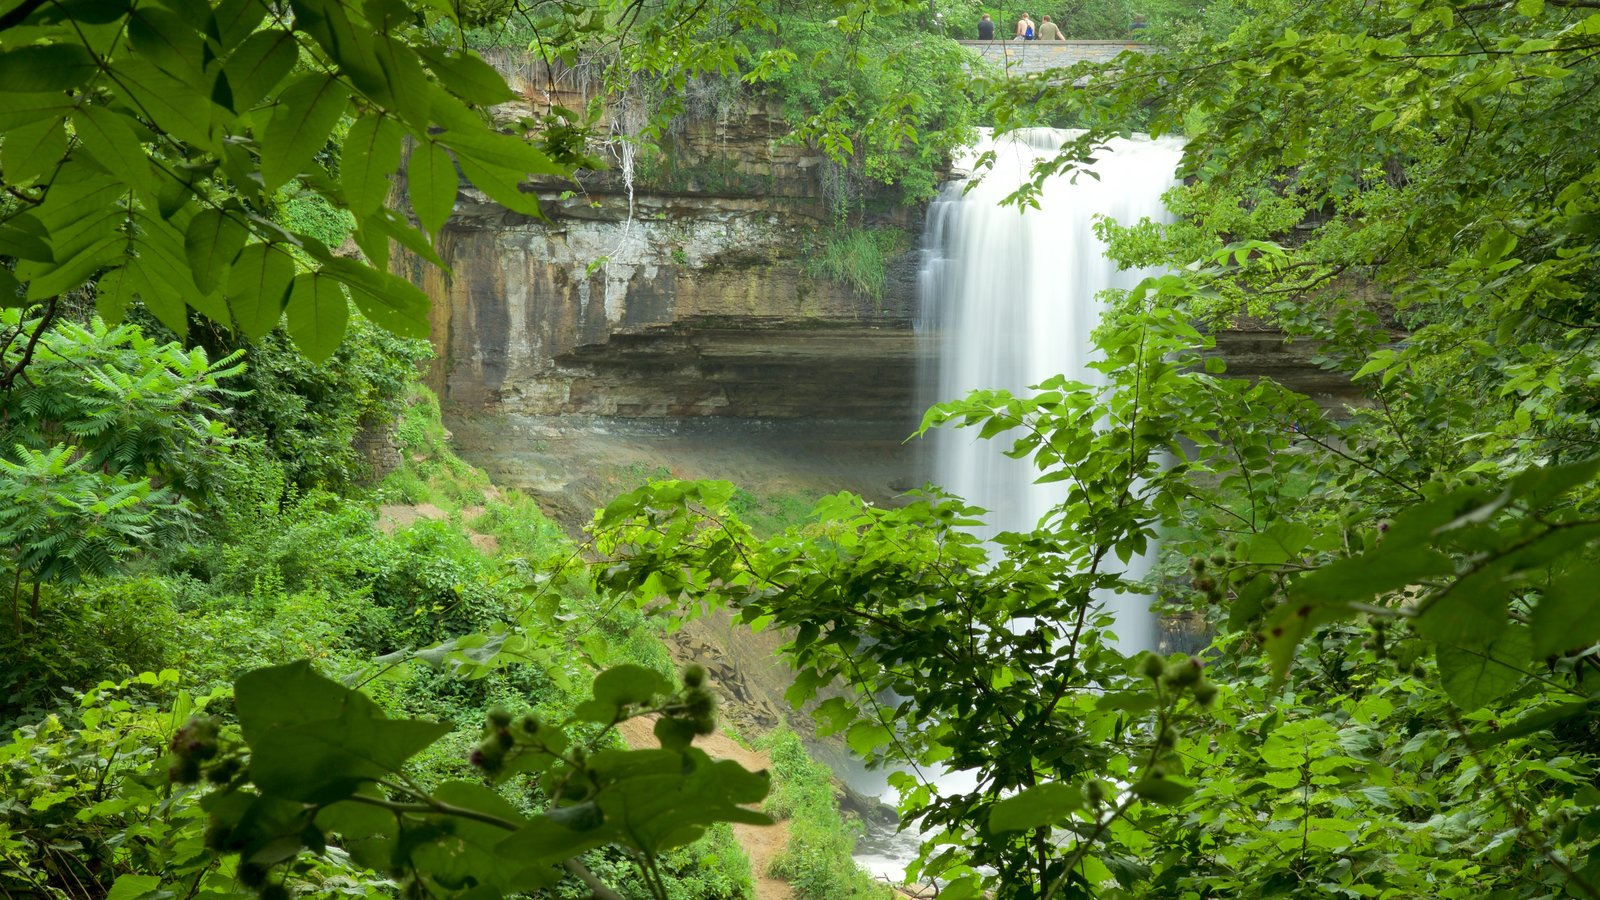 Minnehaha Park minnehaha park pictures: view photos & images of minnehaha park